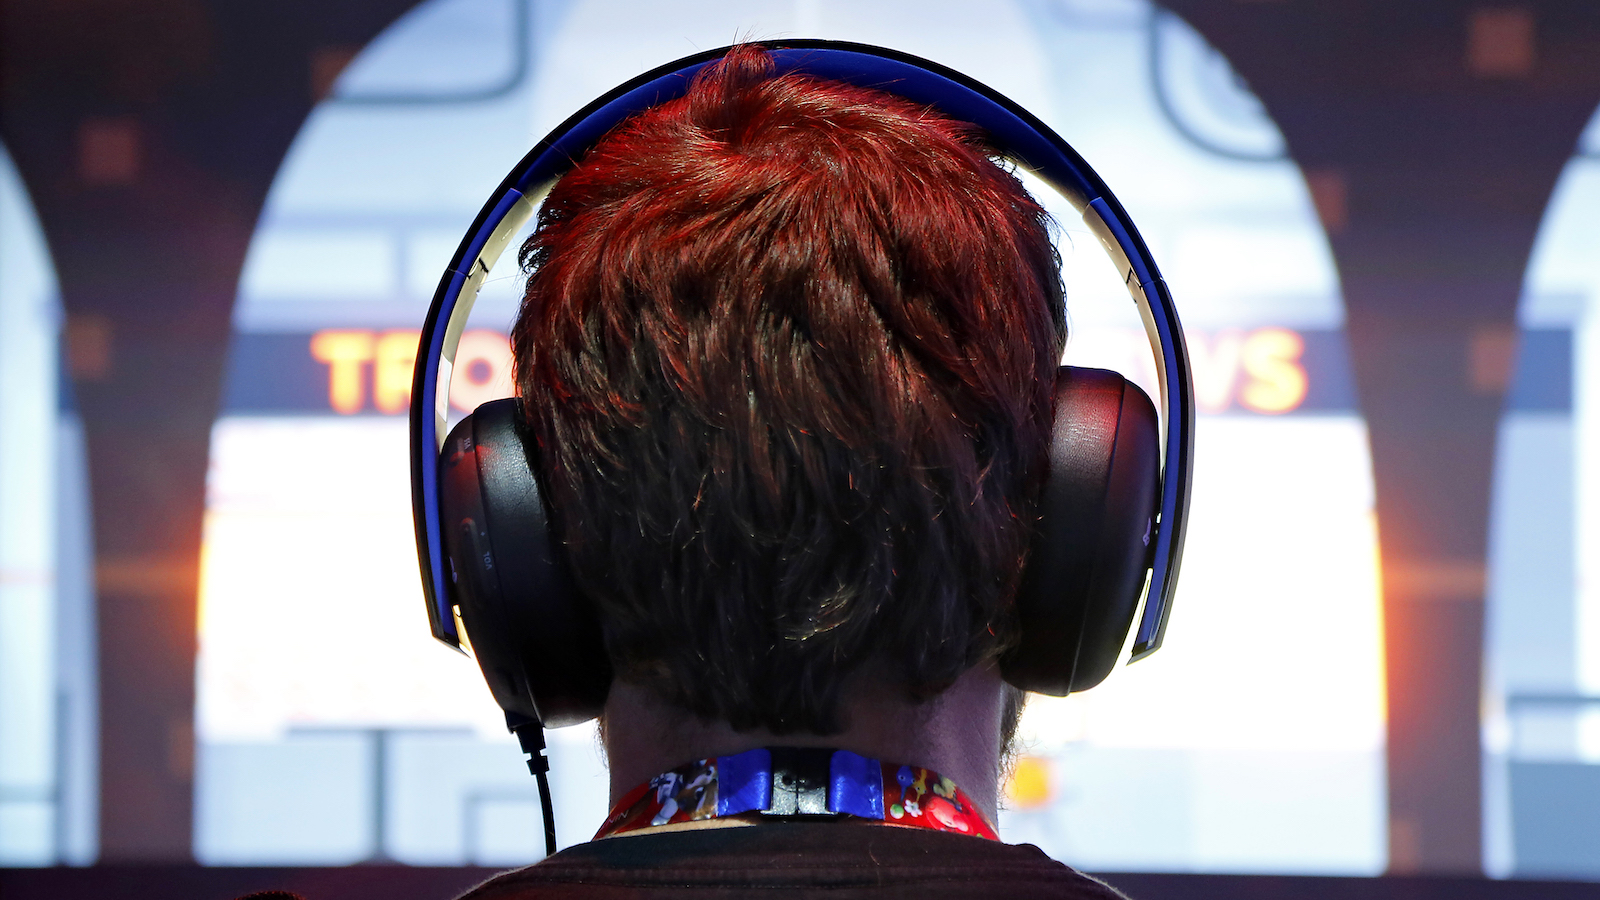 A gamer wears headphones while playing a game at the 2014 Electronic Entertainment Expo, known as E3, in Los Angeles, California June 10, 2014.